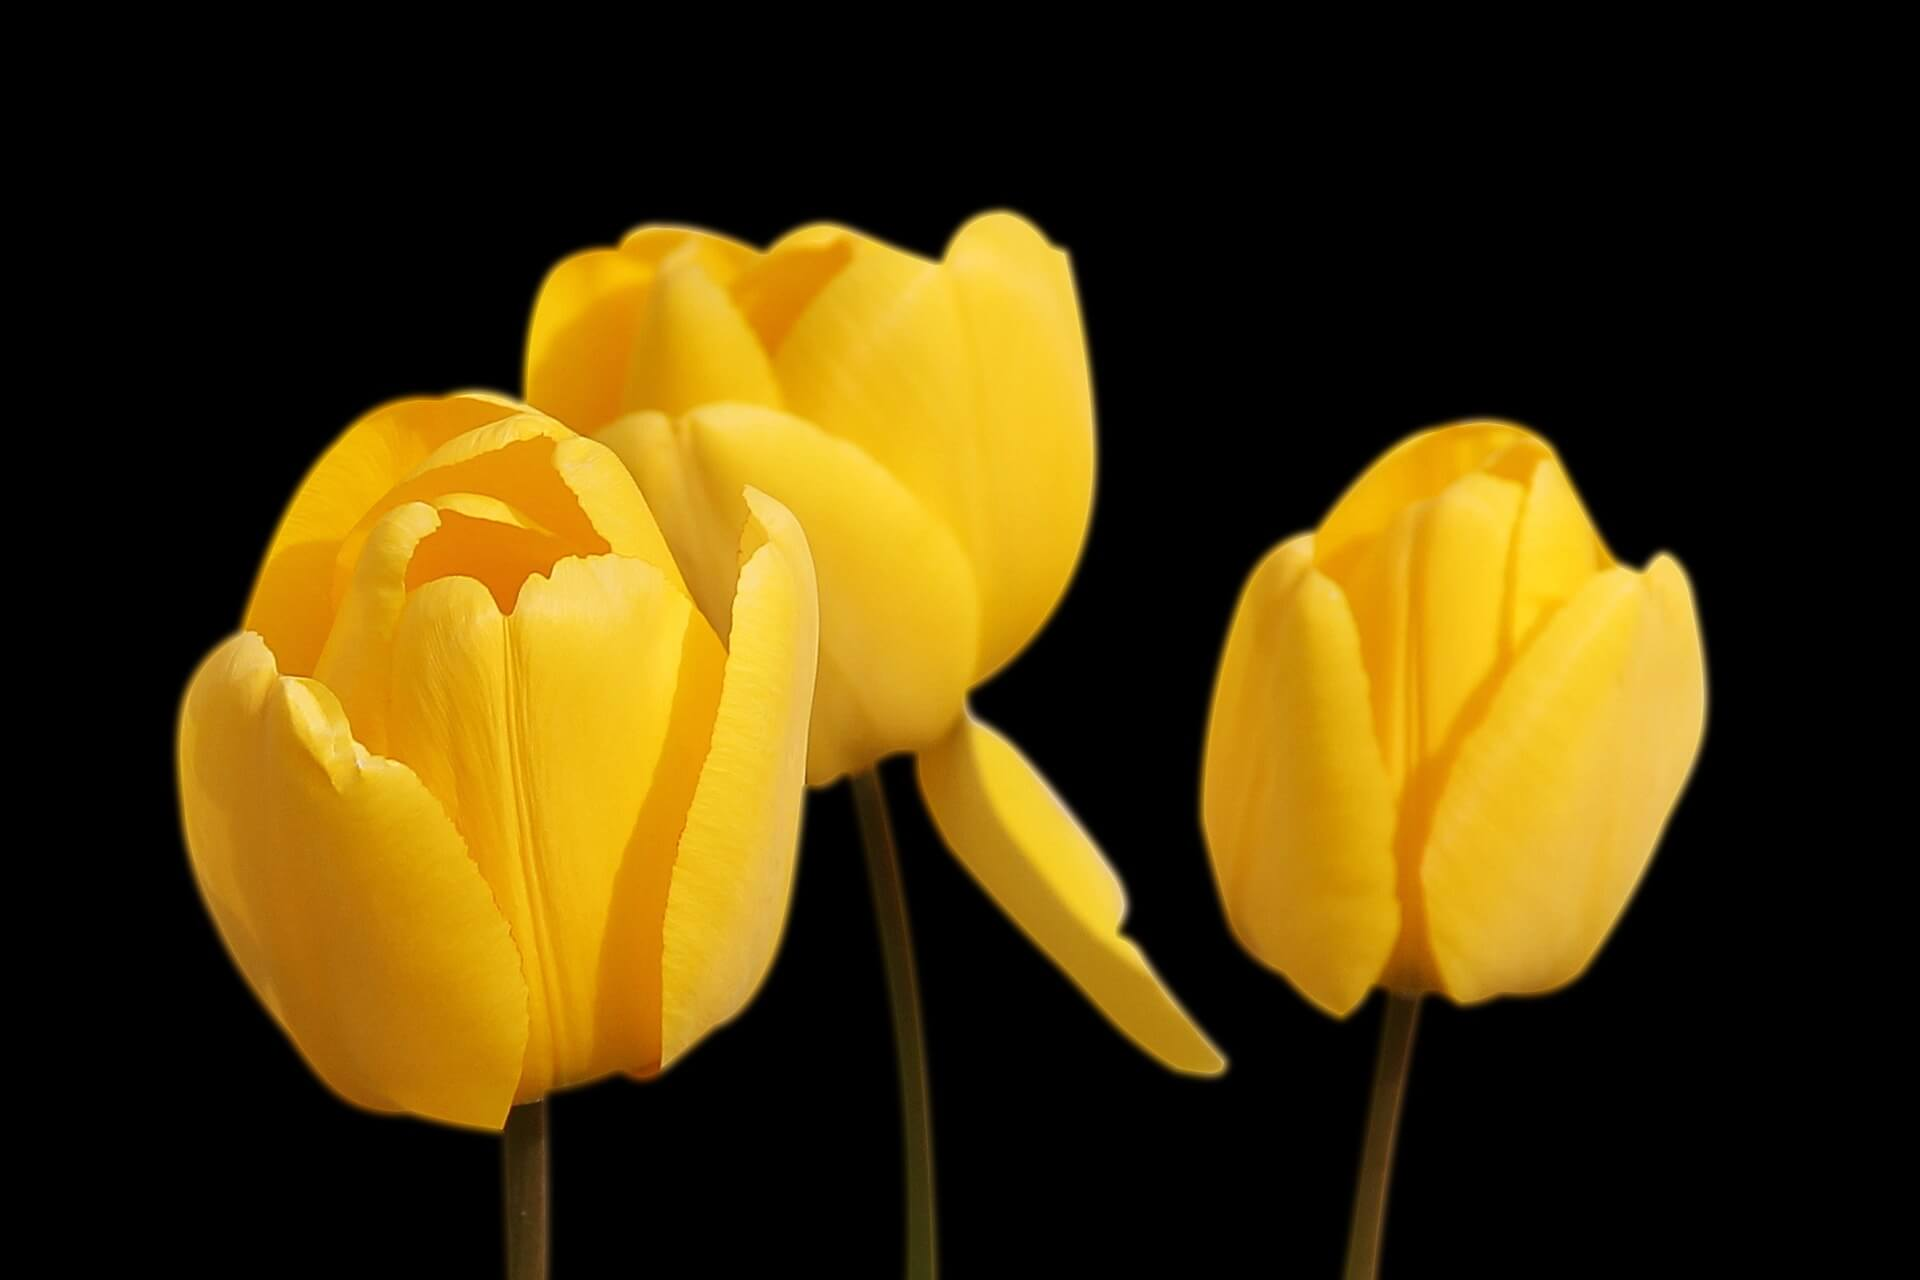 Tulips Flower-Wallpaper-Background-floral